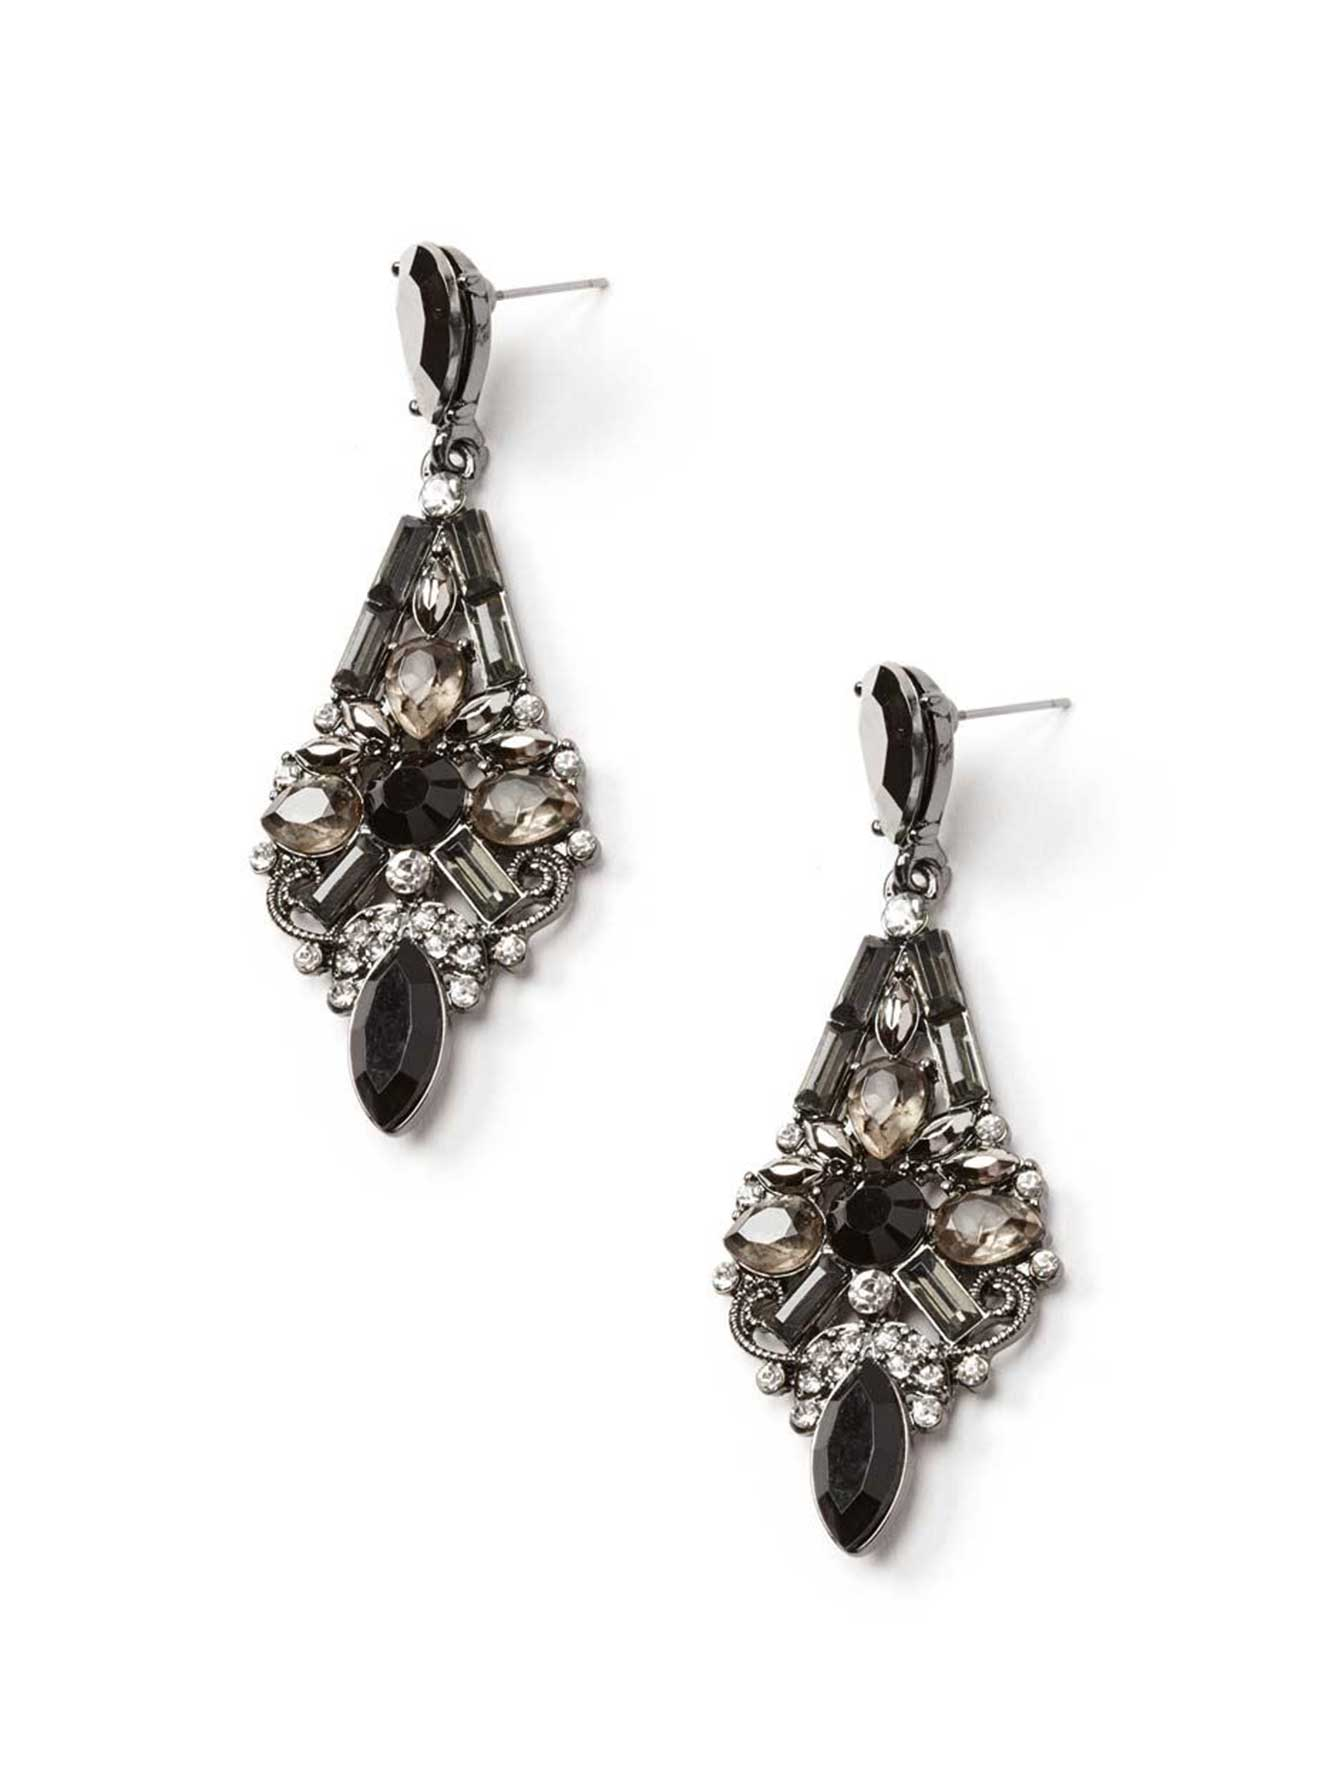 Statement Earrings with Black Stones